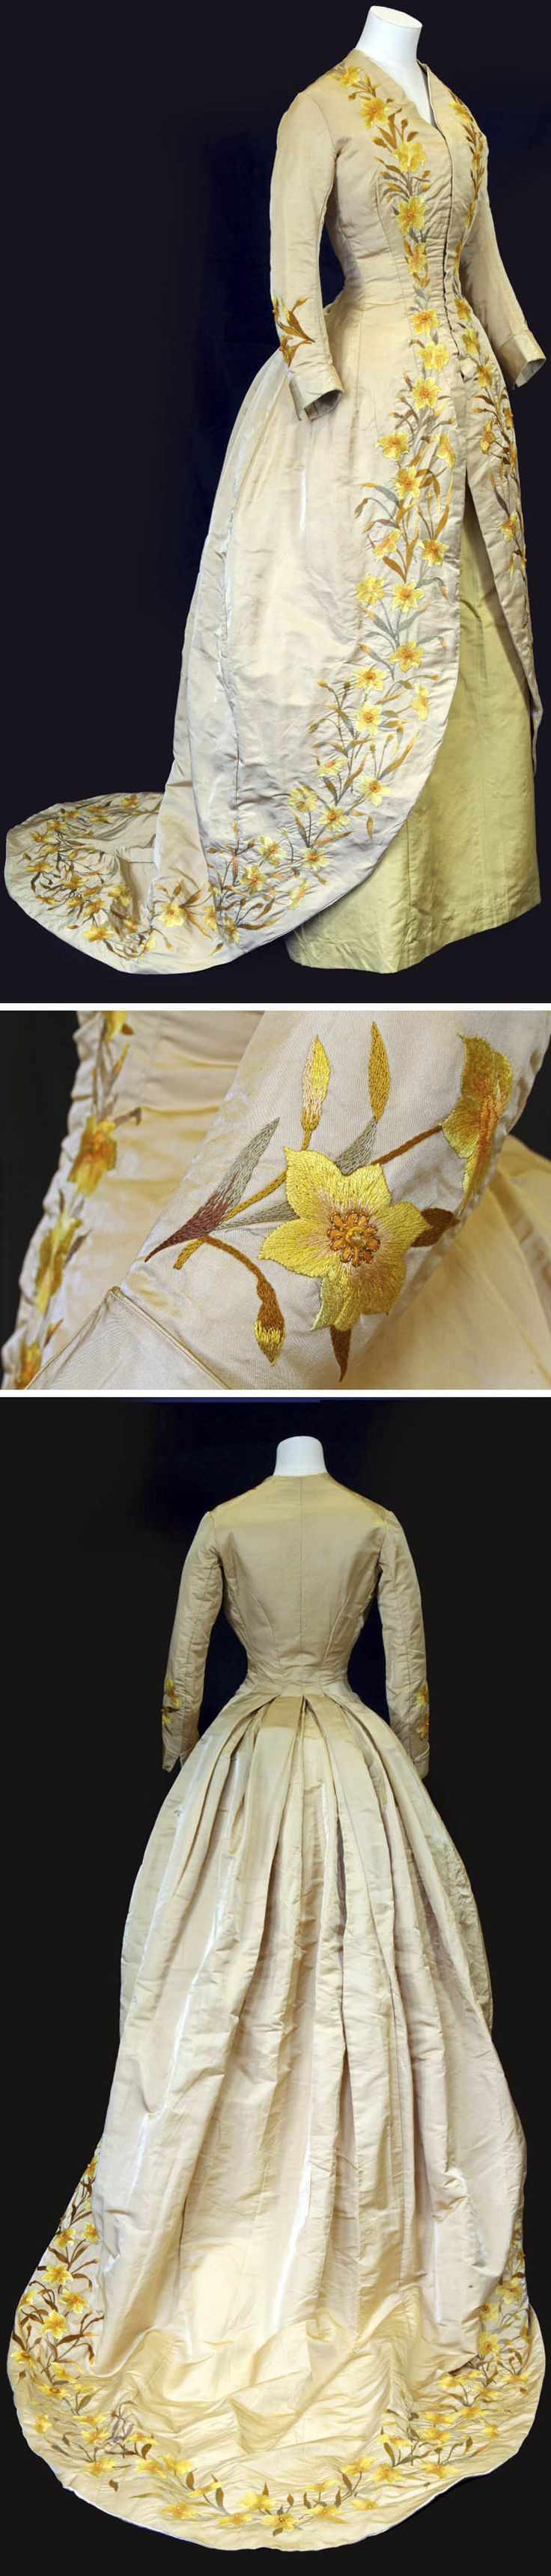 Tea gown, Philadelphia, ca. 1892. Beige silk lined with yellow silk satin; yellow underskirt. Hand-embroidered with daffodils. Small glass beads form the center of the flowers. Front opening with hook & eye fasteners. American Museum in Britain